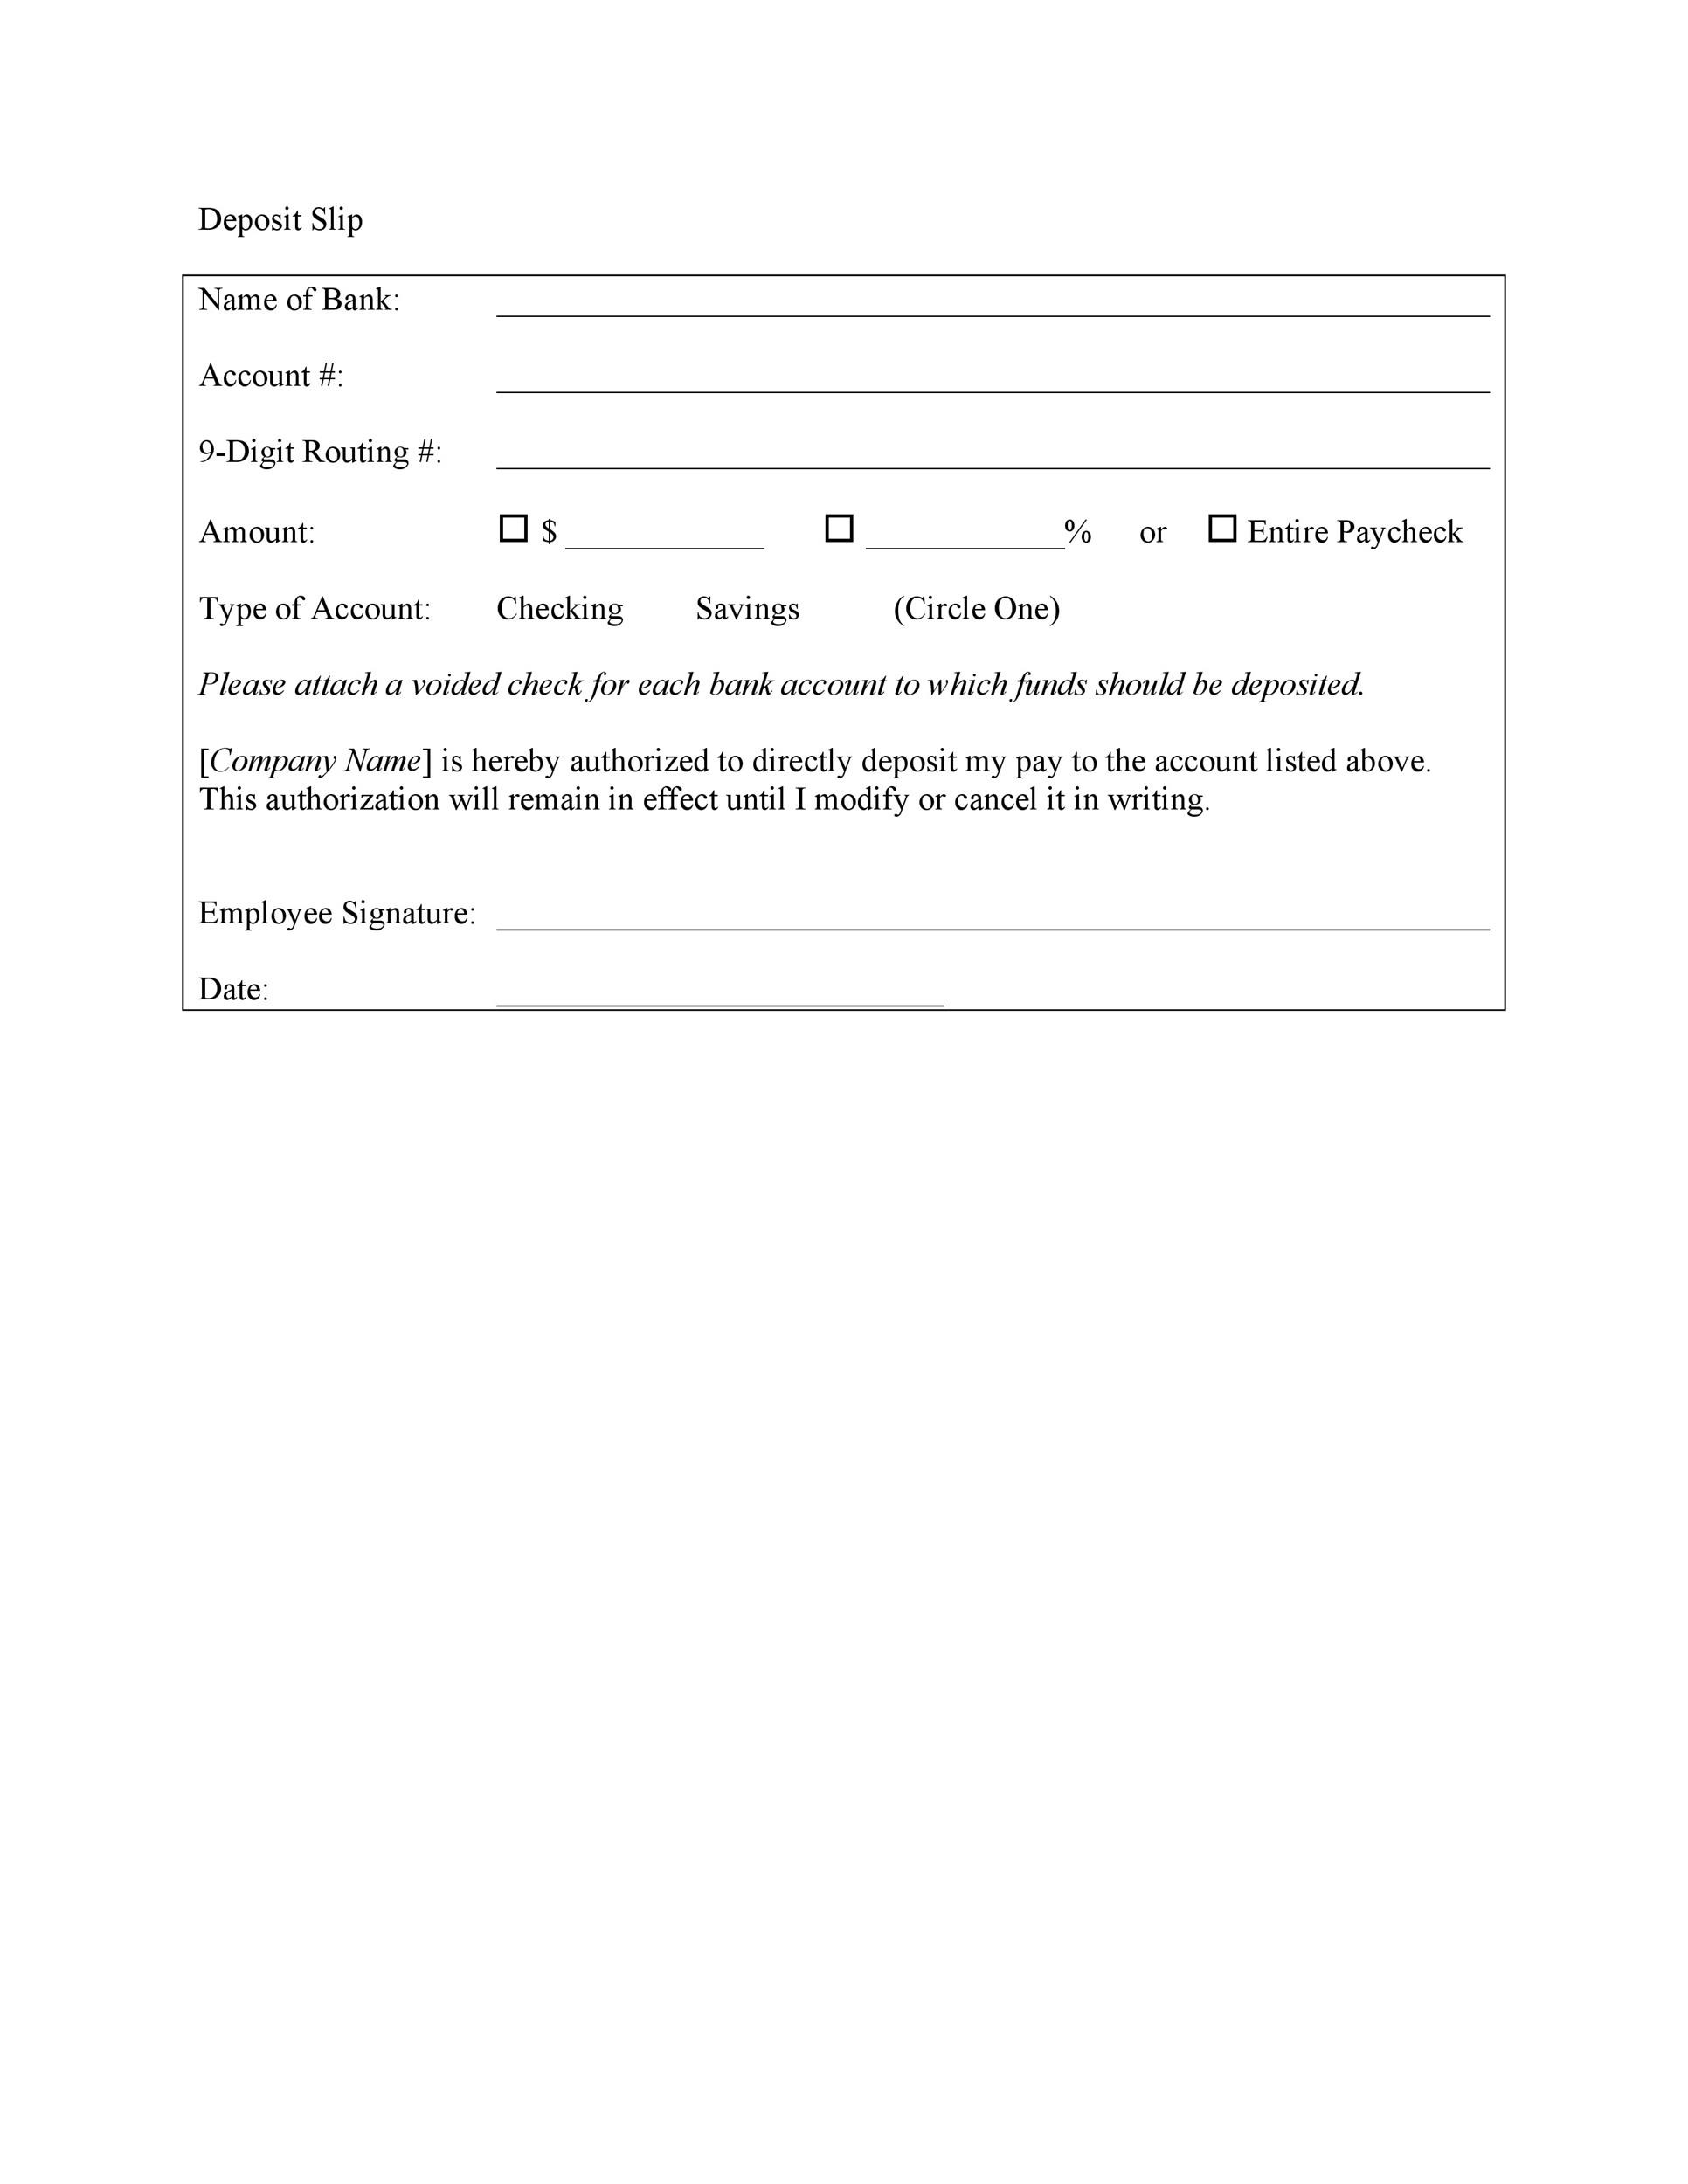 Deposit Slip Template Word